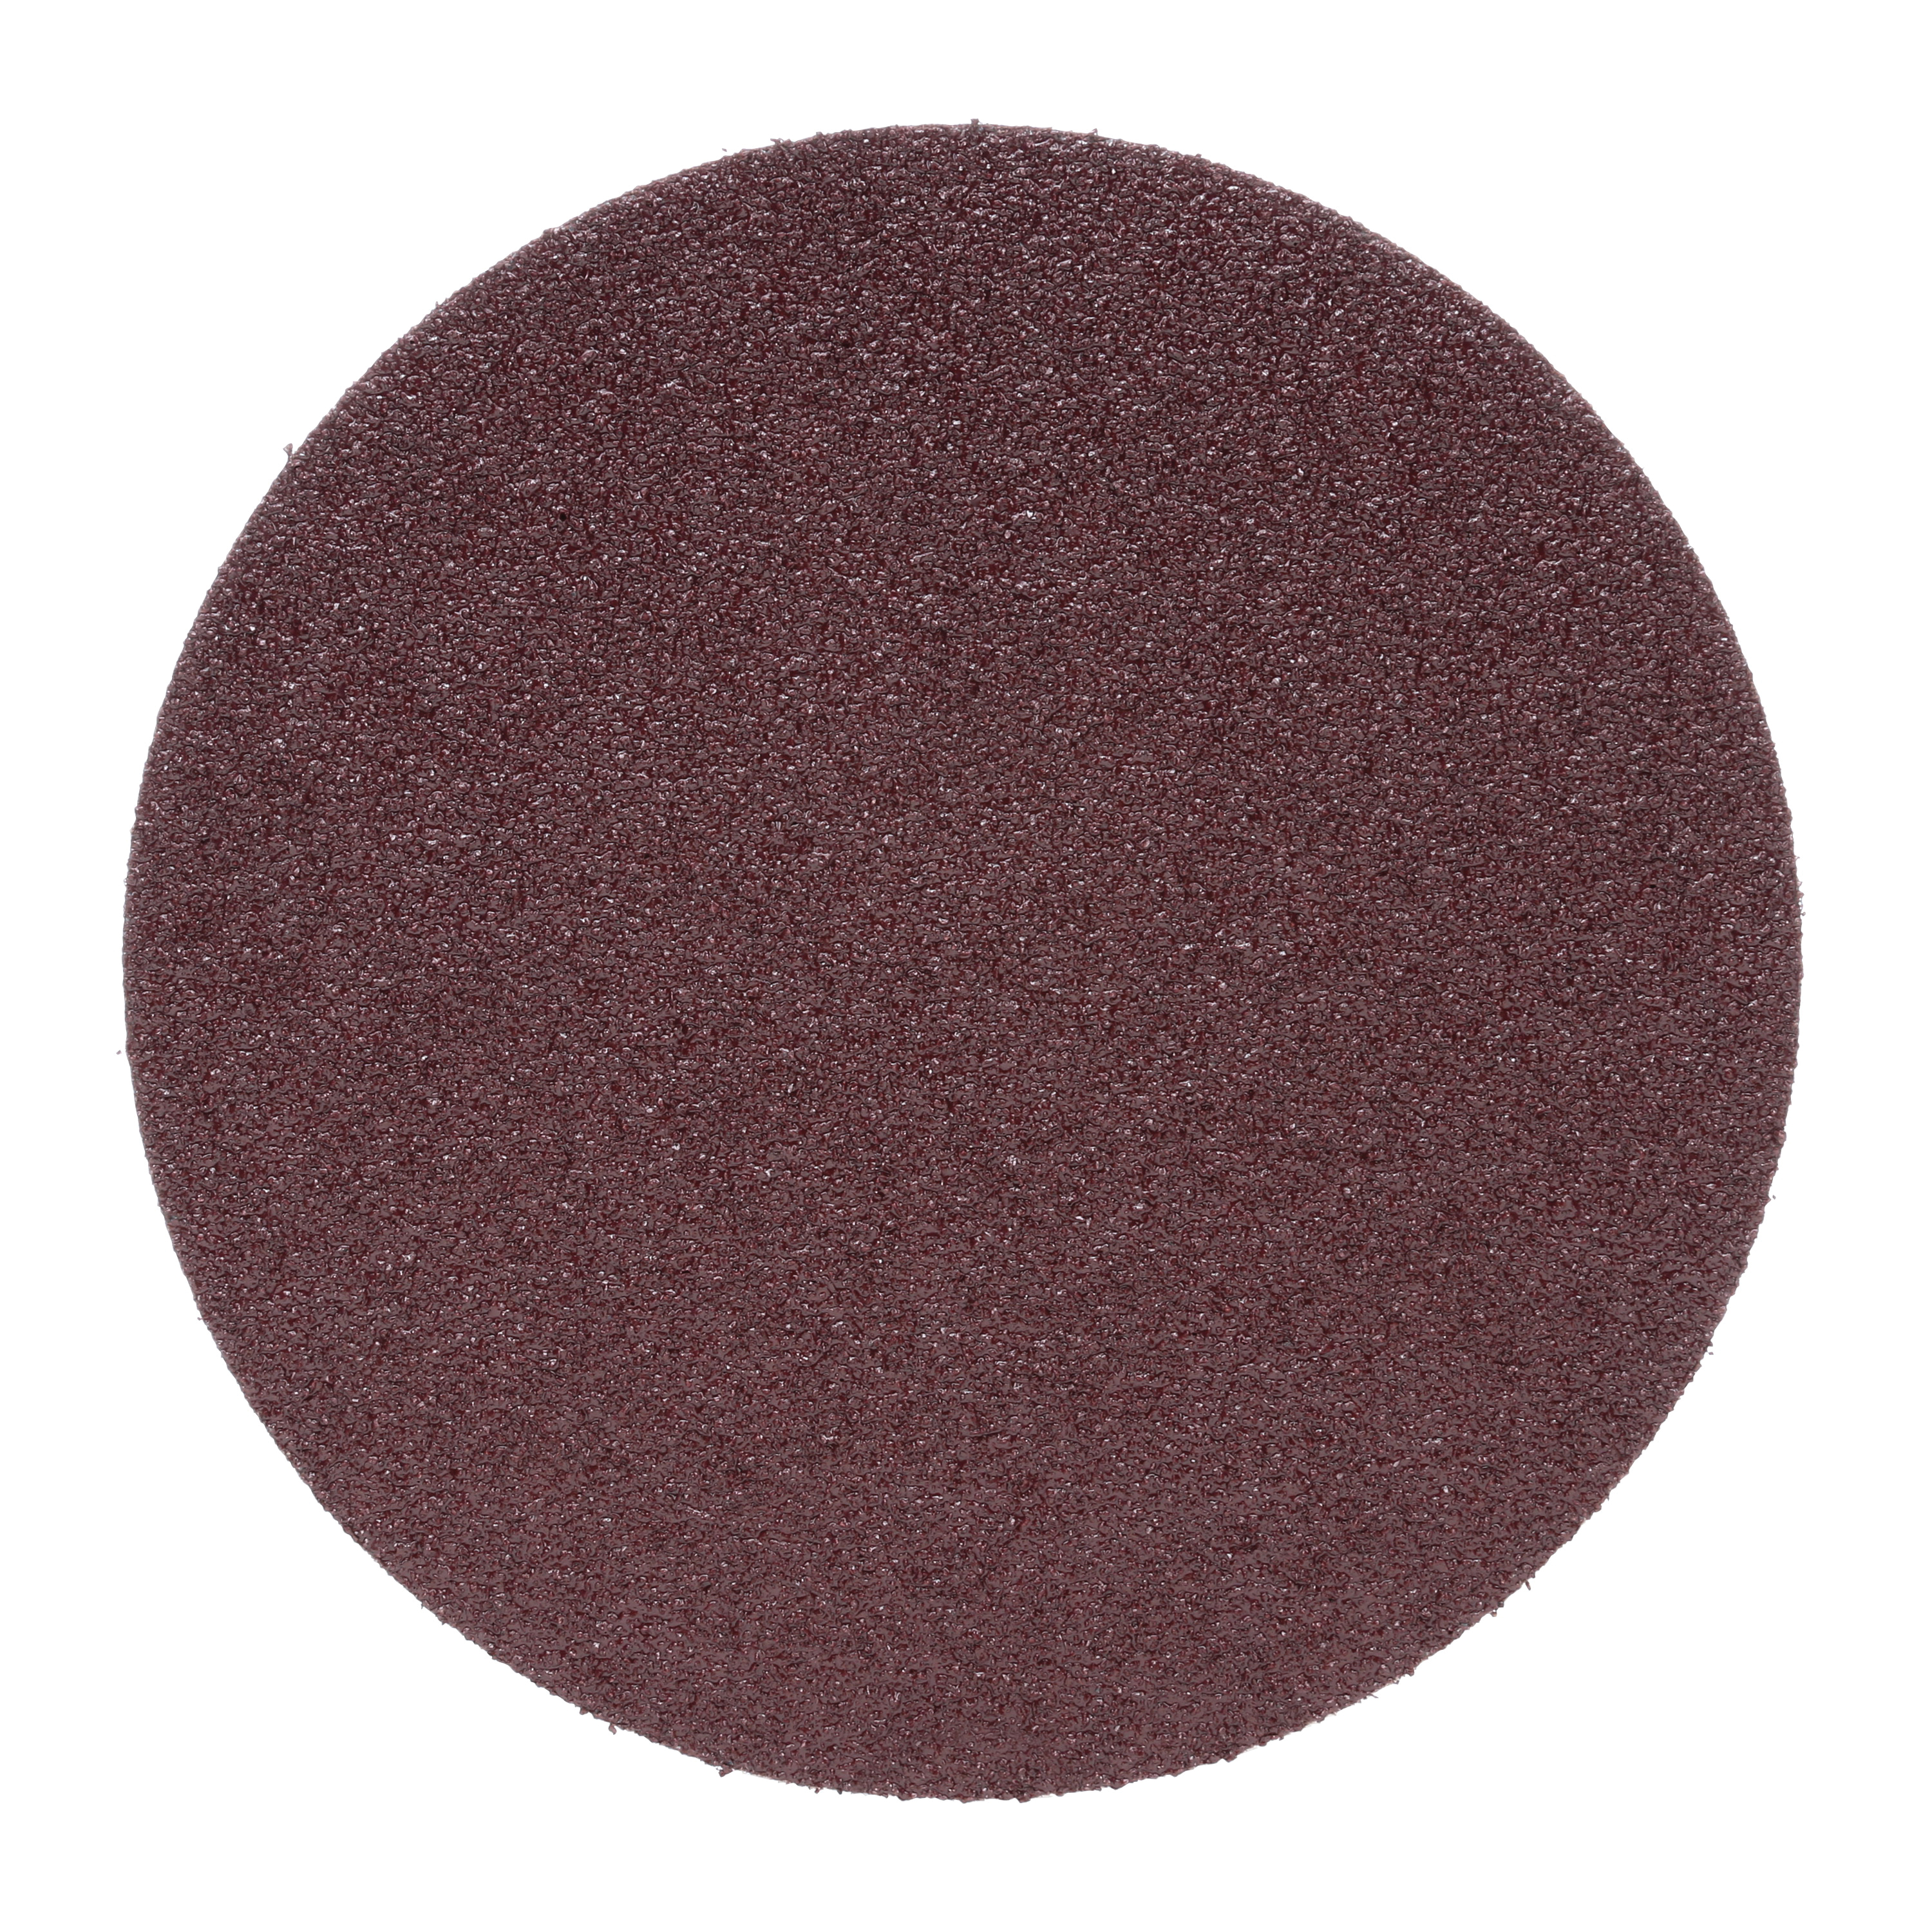 3M™ 051144-20874 Heavy Duty PSA Close Coated Abrasive Disc, 8 in Dia, 36 Grit, Very Coarse Grade, Aluminum Oxide Abrasive, Cloth Backing